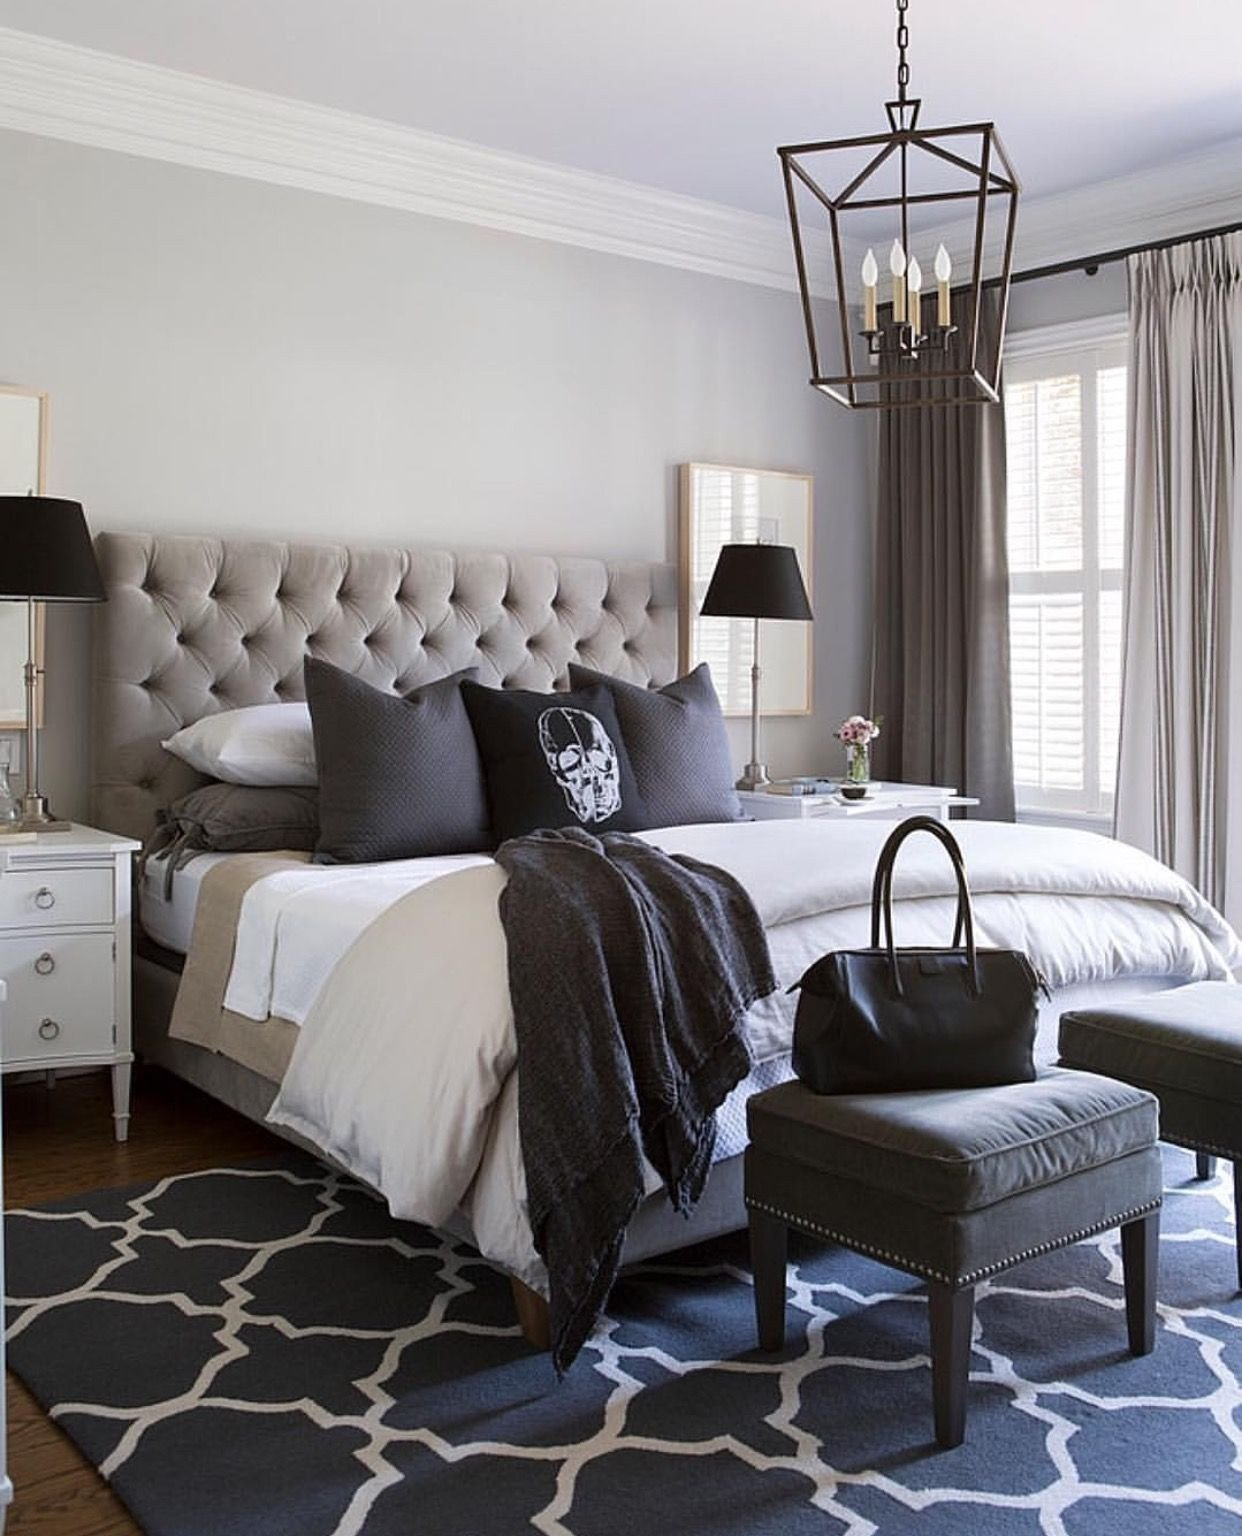 Black White and Gray Bedroom Fresh Bedroom Design Ideas